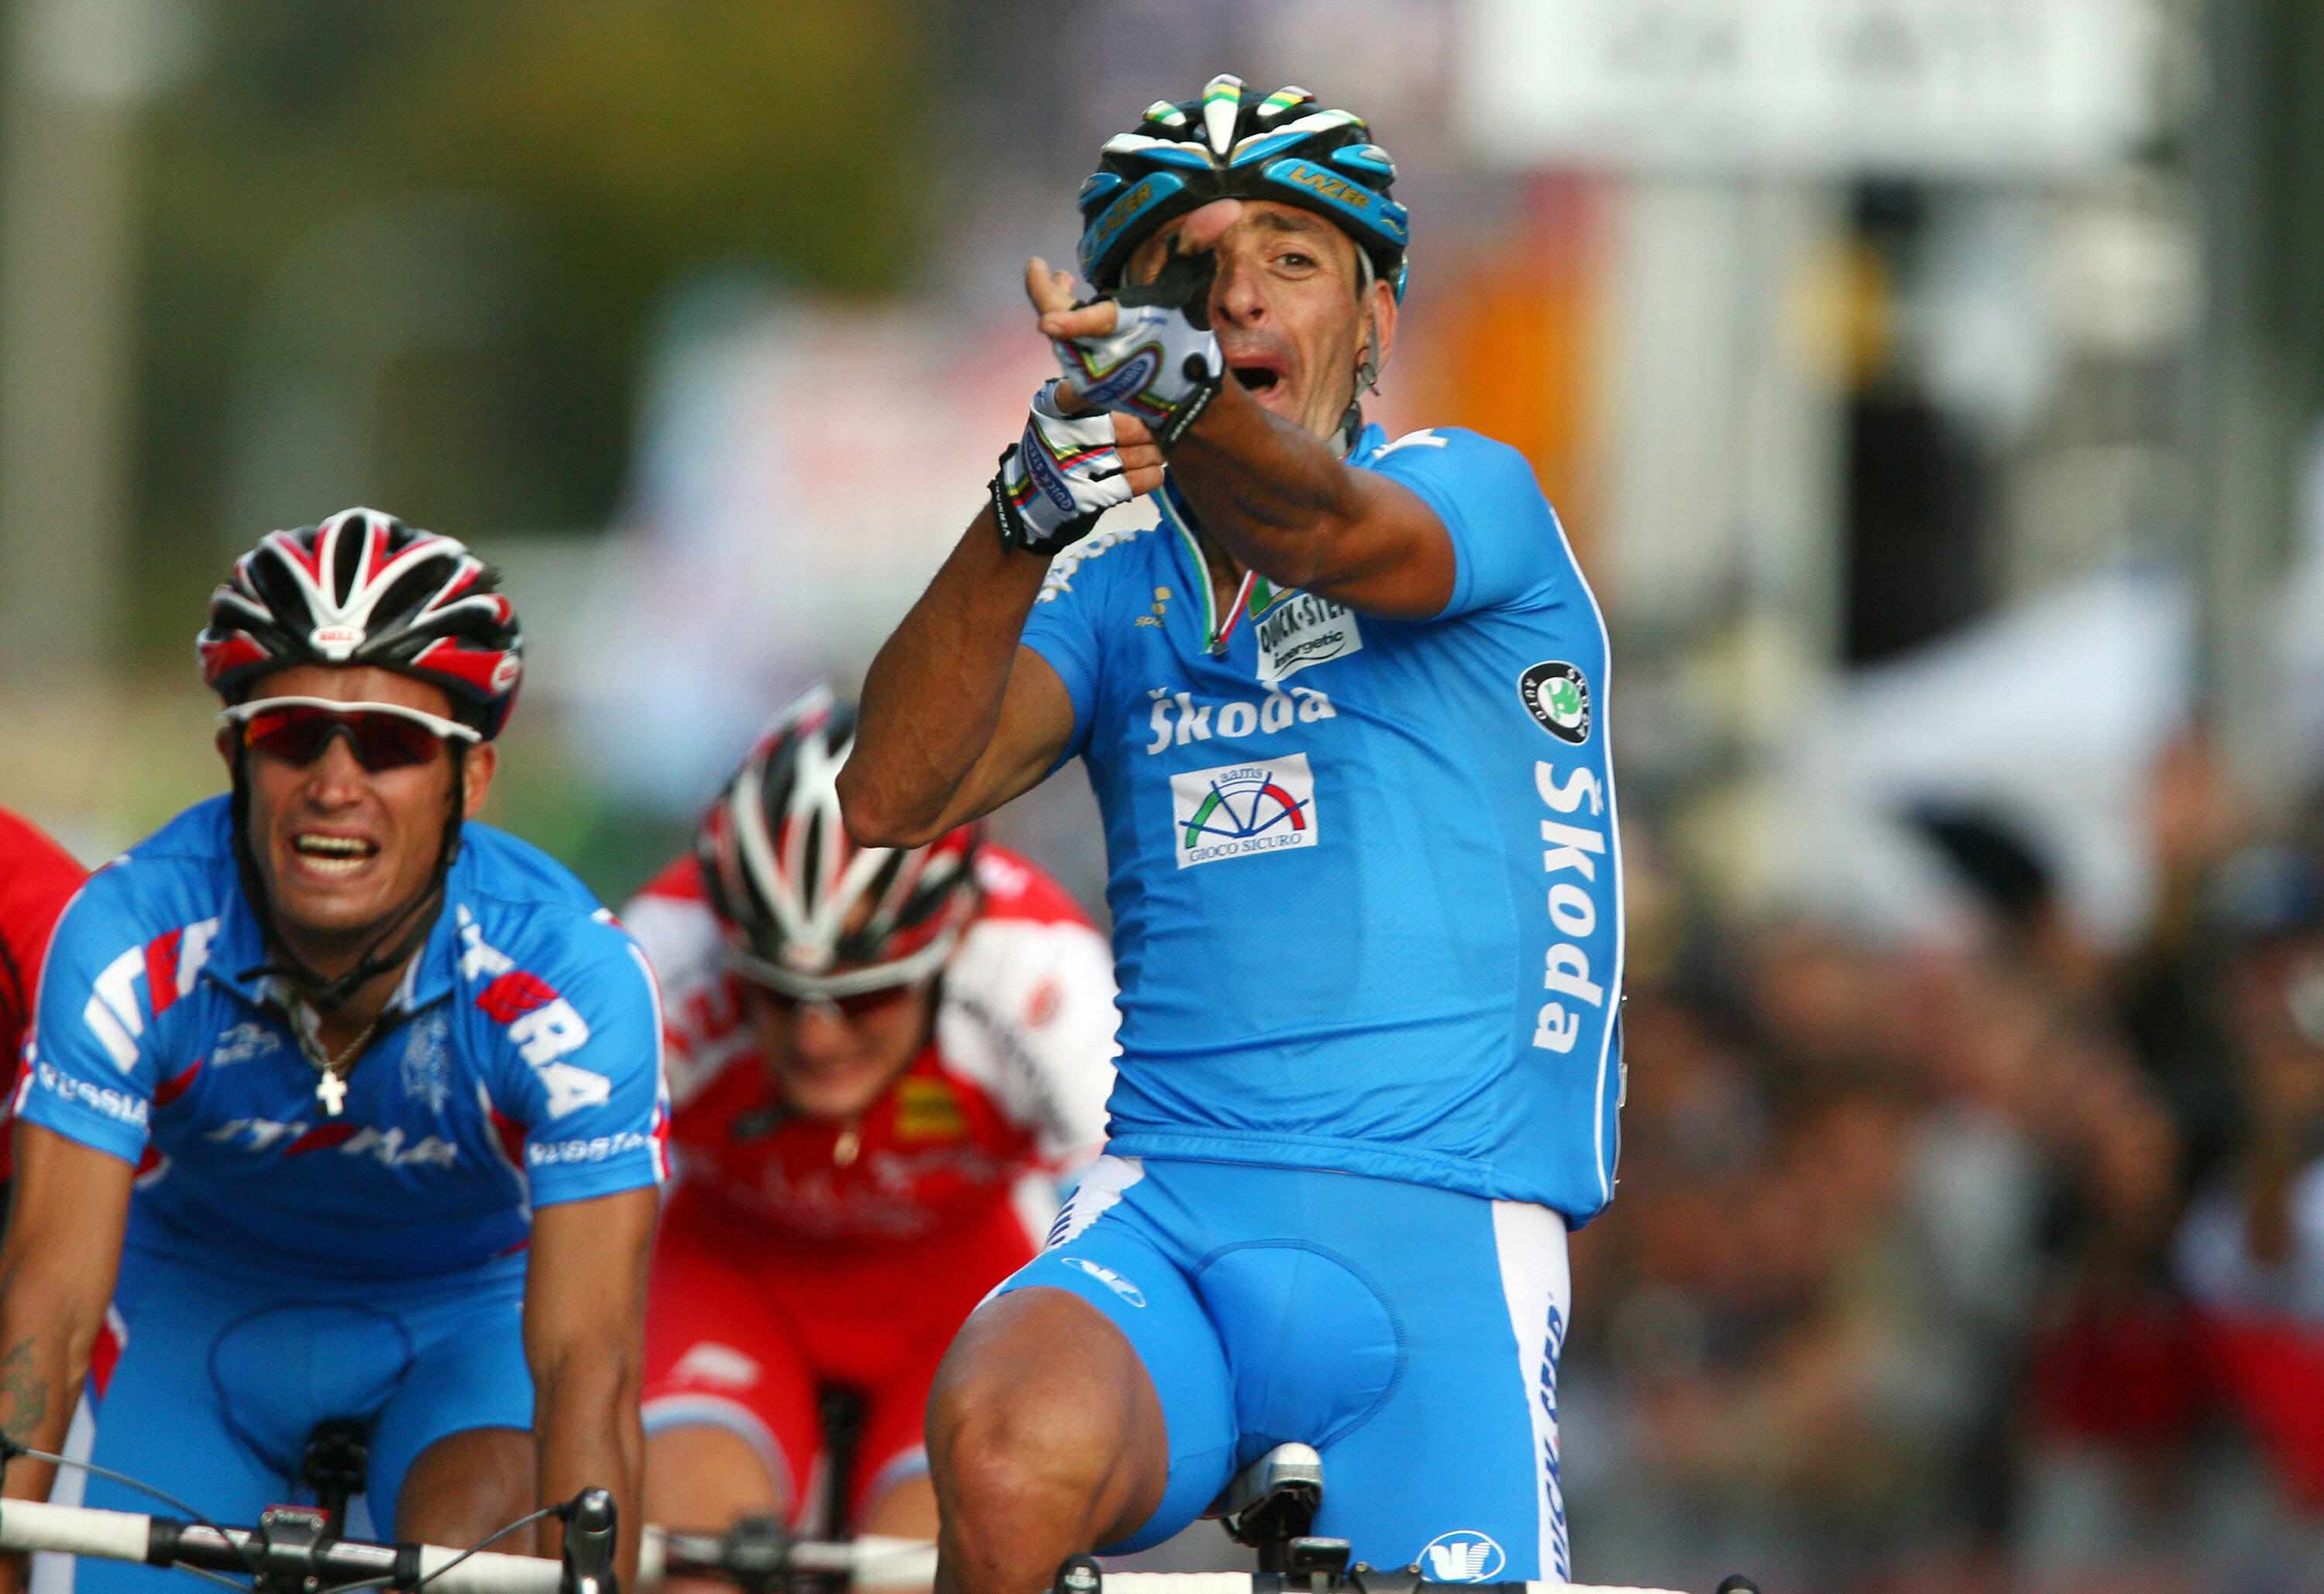 Bettini reminds the UCI who's in whose crosshairs after winning World's in Stuttgart.